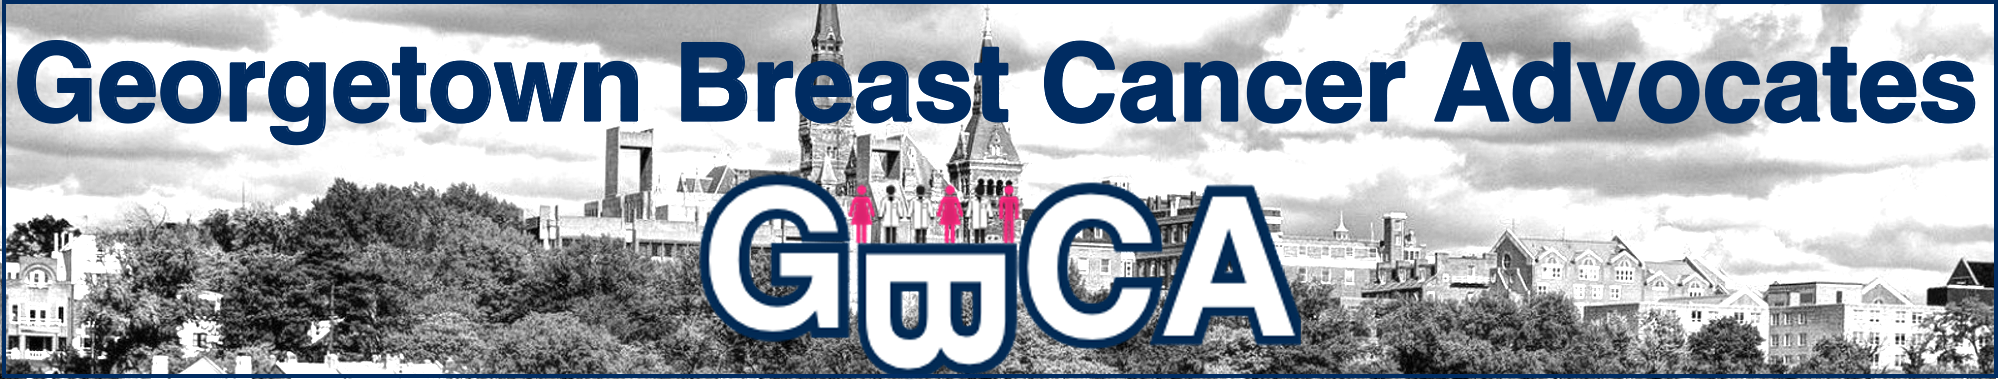 Georgetown Breast Cancer Advocates